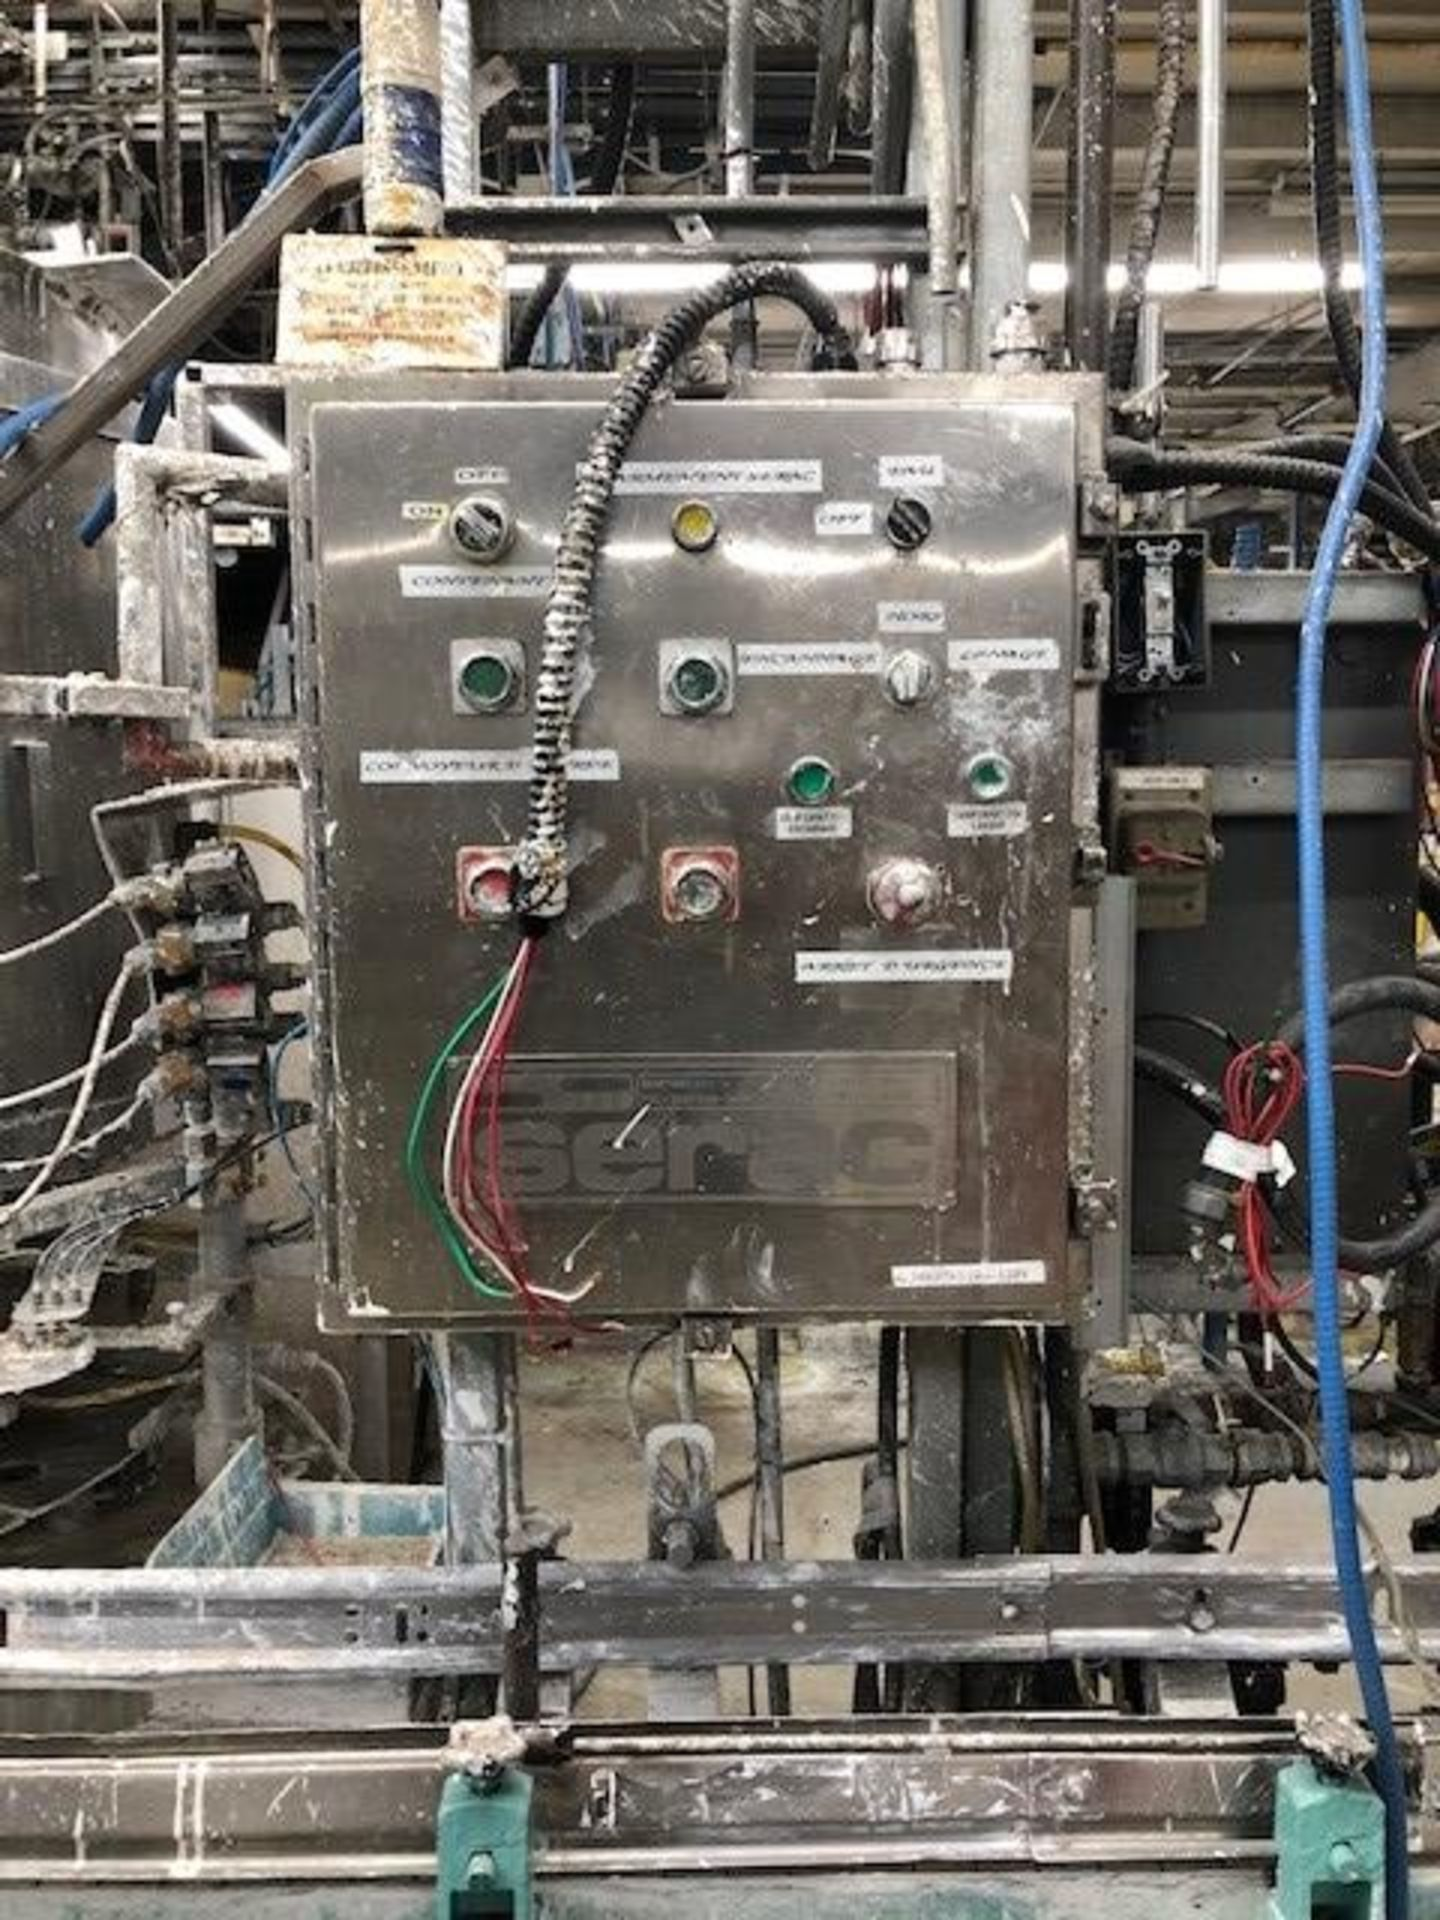 Filler Serac rotary 8 heads gallons - Image 2 of 2